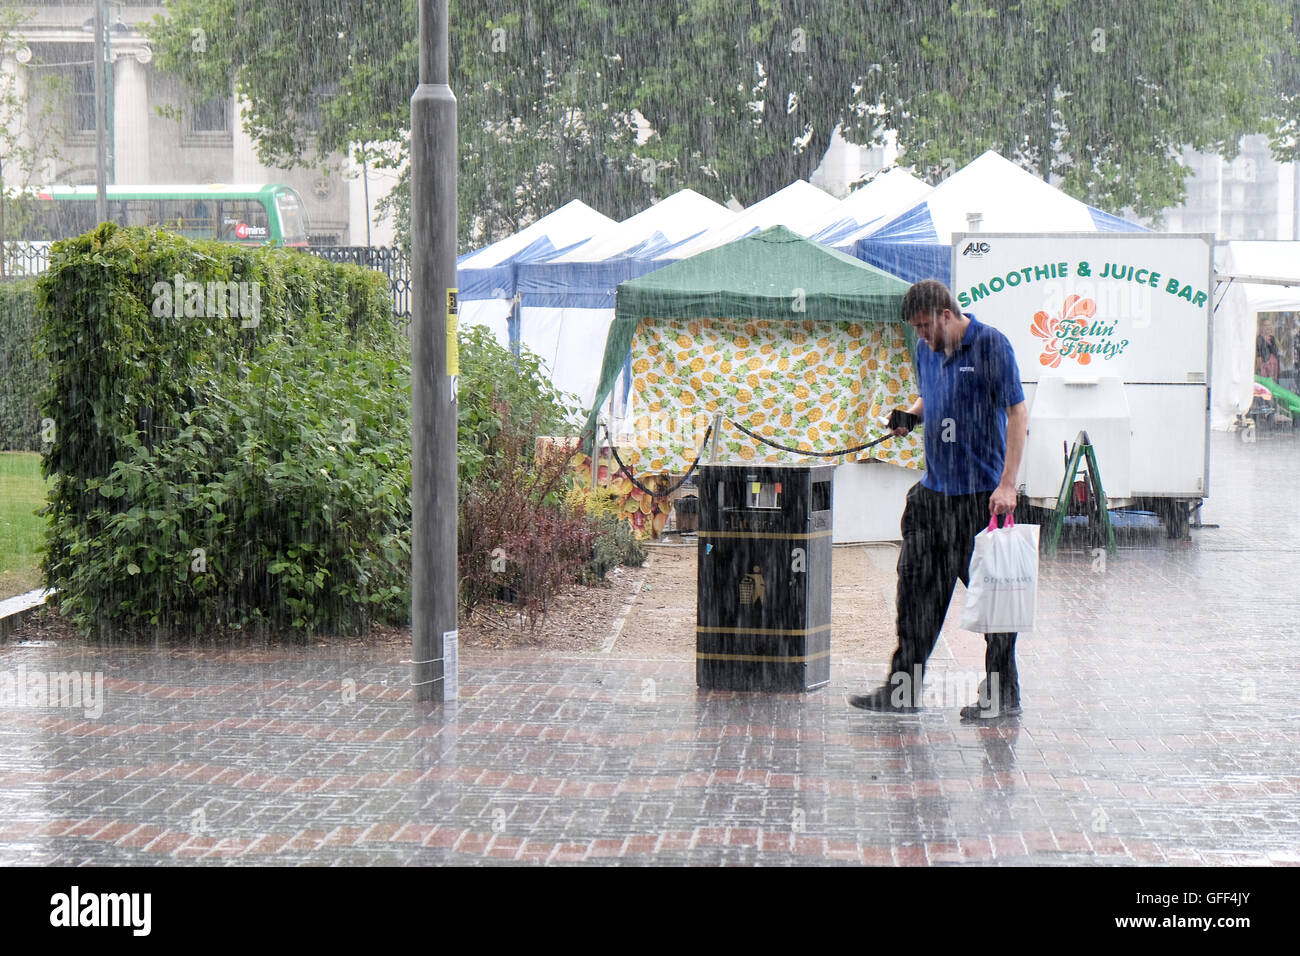 A male shopper walks across a pedestrian area in the pouring rain having been caught out bu a sudden summer storm - Stock Image